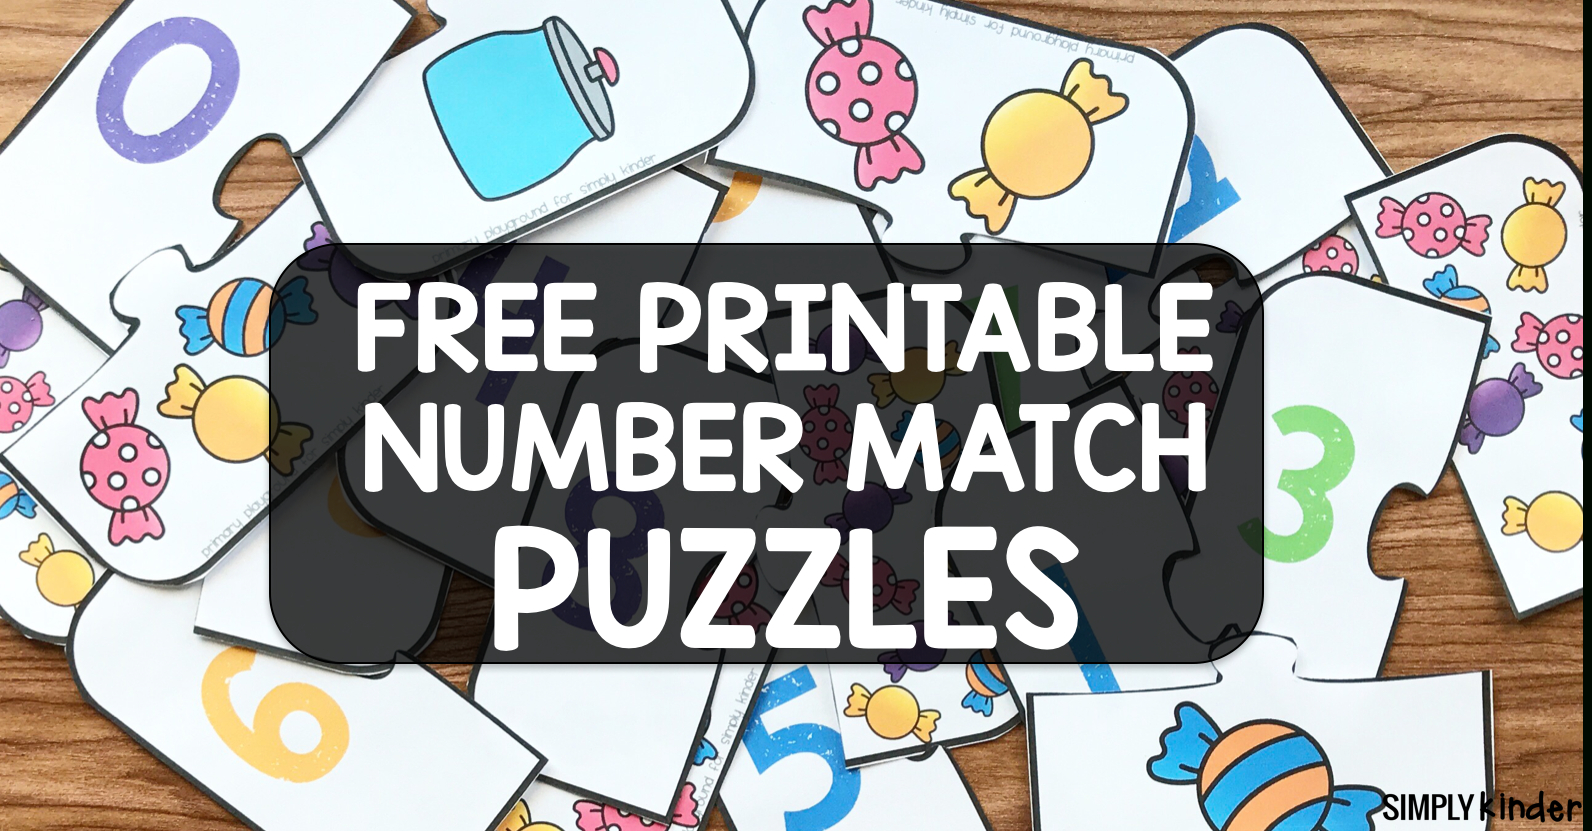 Free Printable Number Match Puzzles - Simply Kinder - Printable Number Puzzle